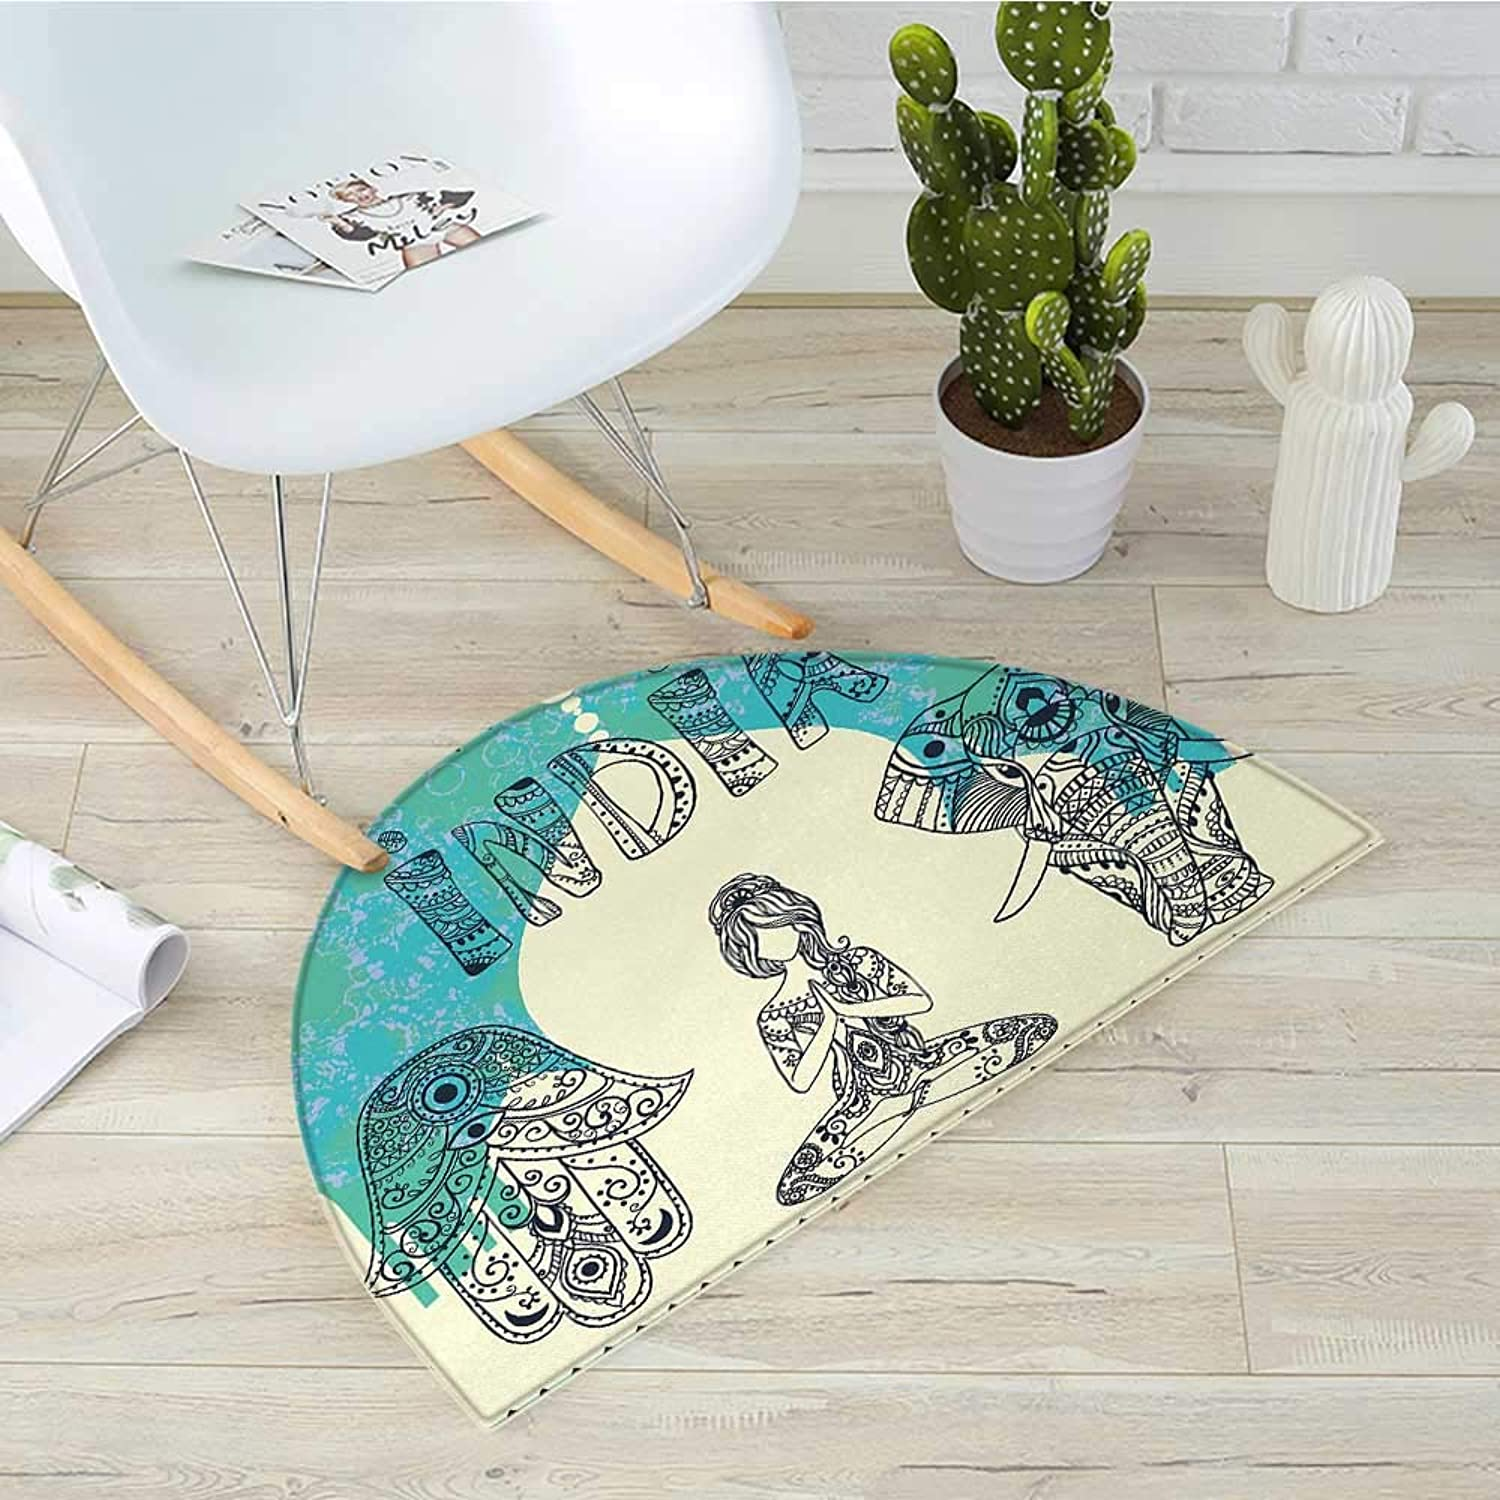 Yoga Semicircle Doormat Ethnic Elephant Hamsa Hand Woman Doing Yoga Ornaments Taj Mahal Silhouette Halfmoon doormats H 39.3  xD 59  Jade Green Cream Black